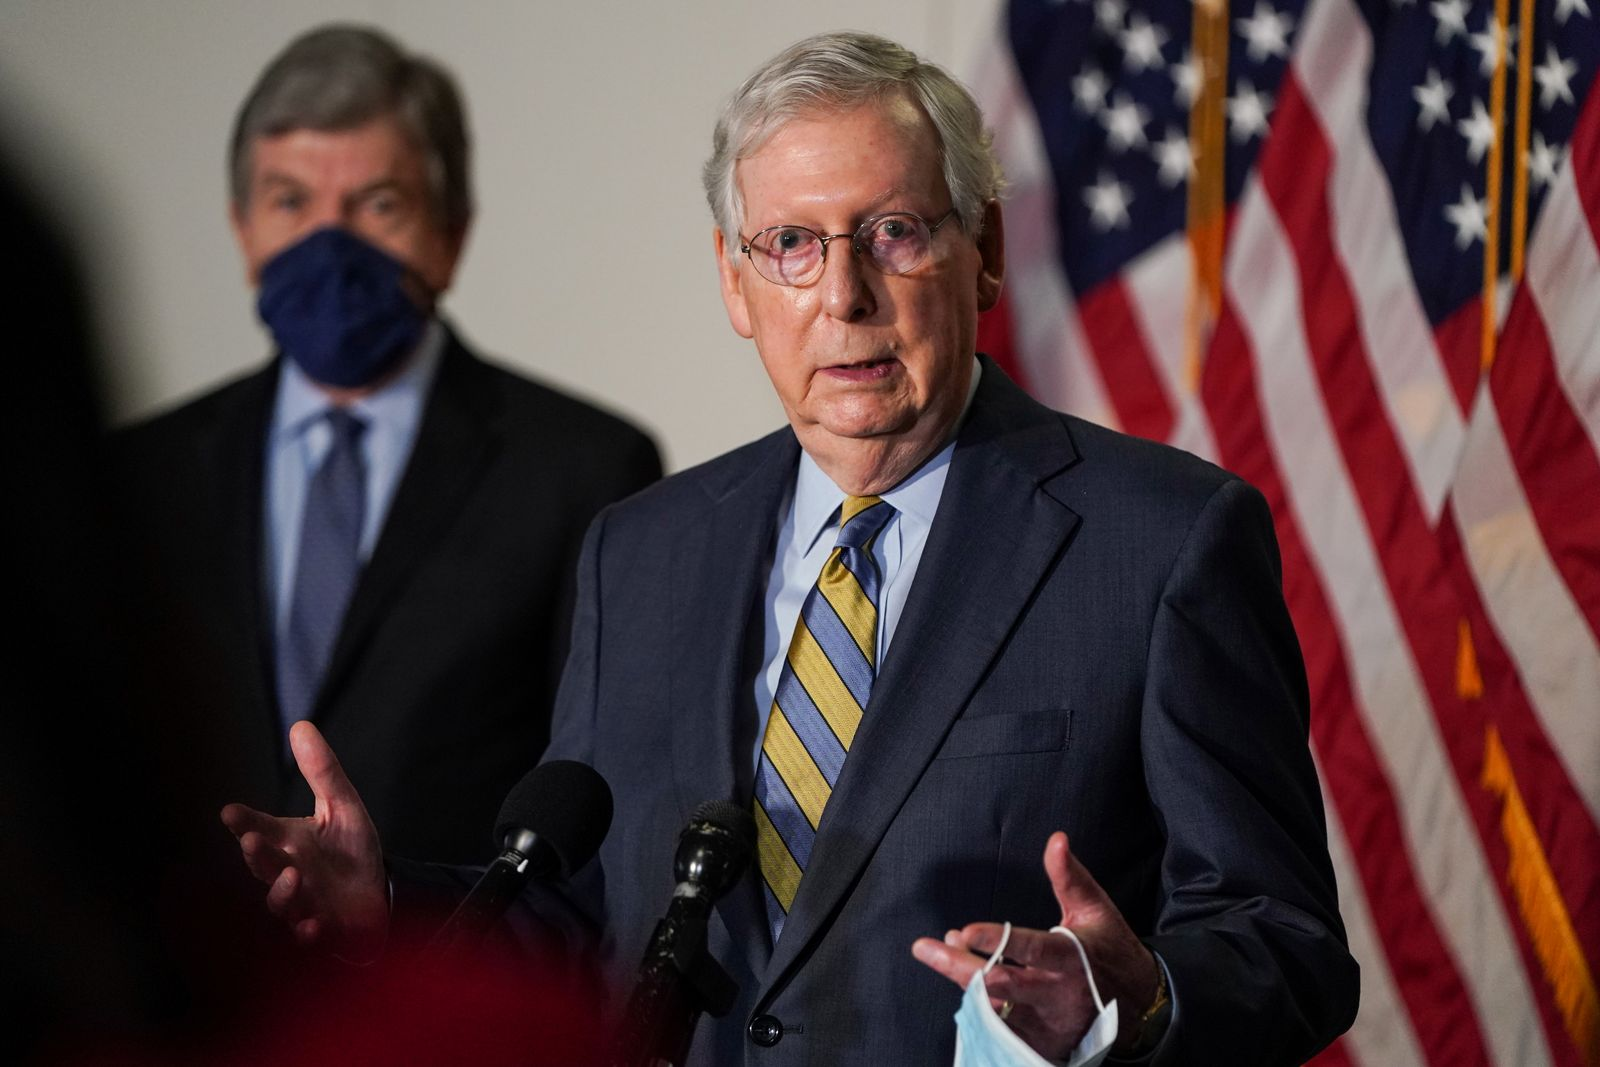 Senate Majority Leader Mitch McConnell (R-KY) speaks to the media in Washington